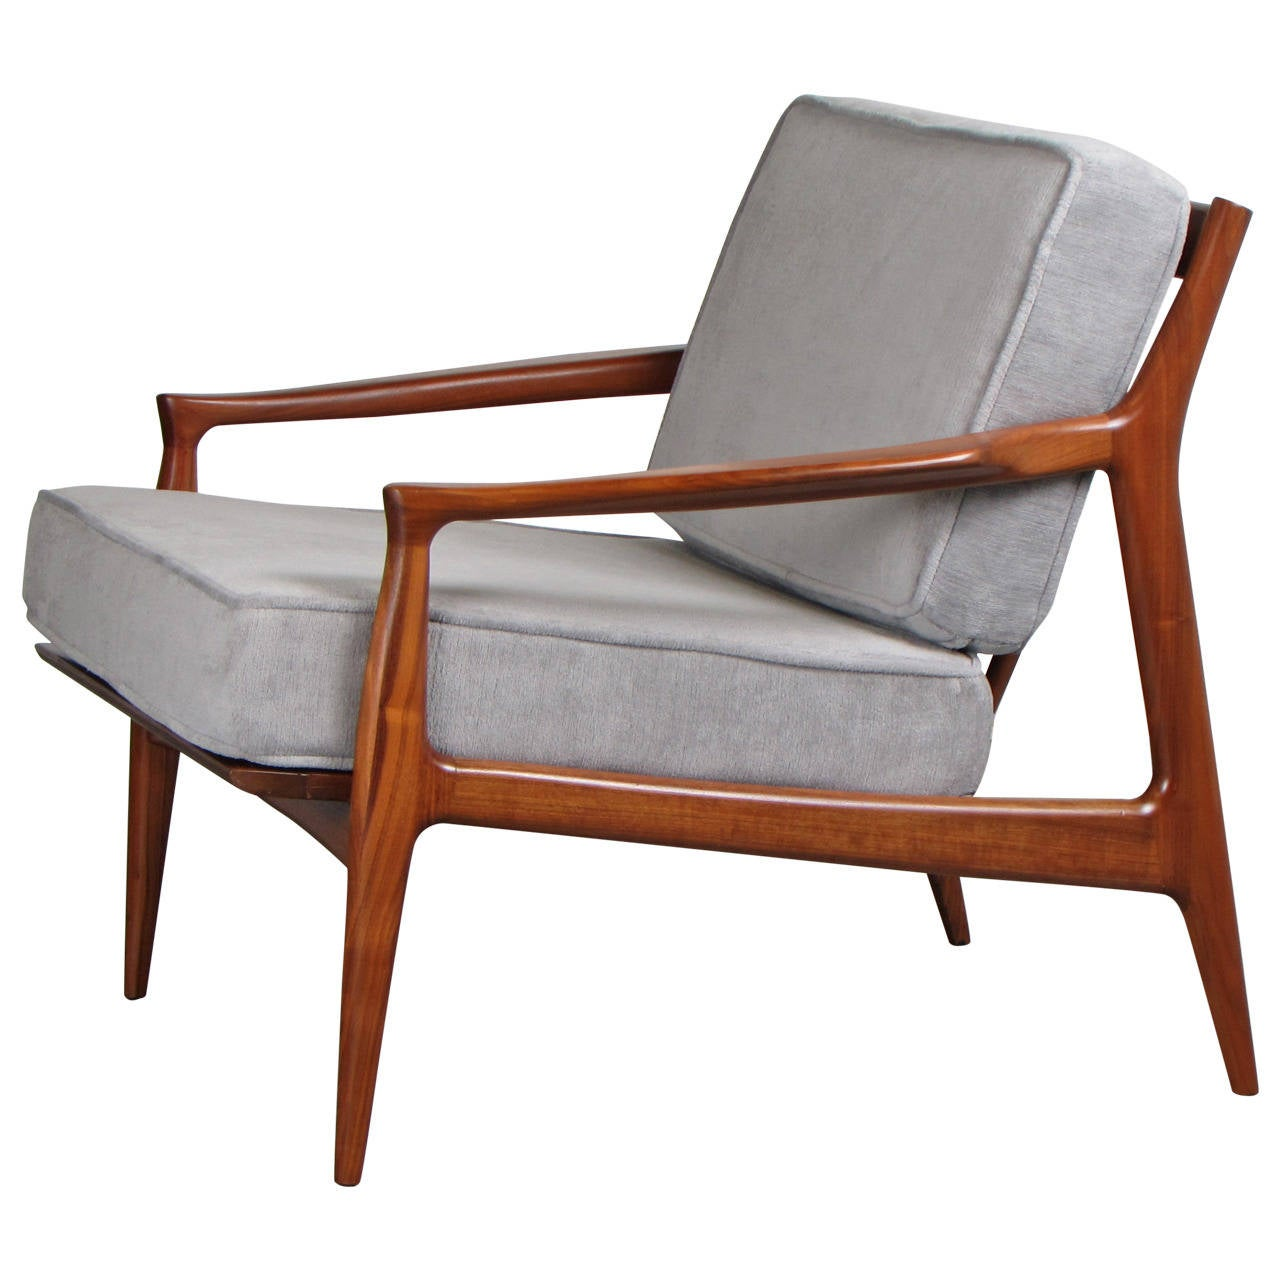 Sculptural Danish Modern Teak Lounge Chair by Ib Kofod Larsen 1960s at 1stdibs